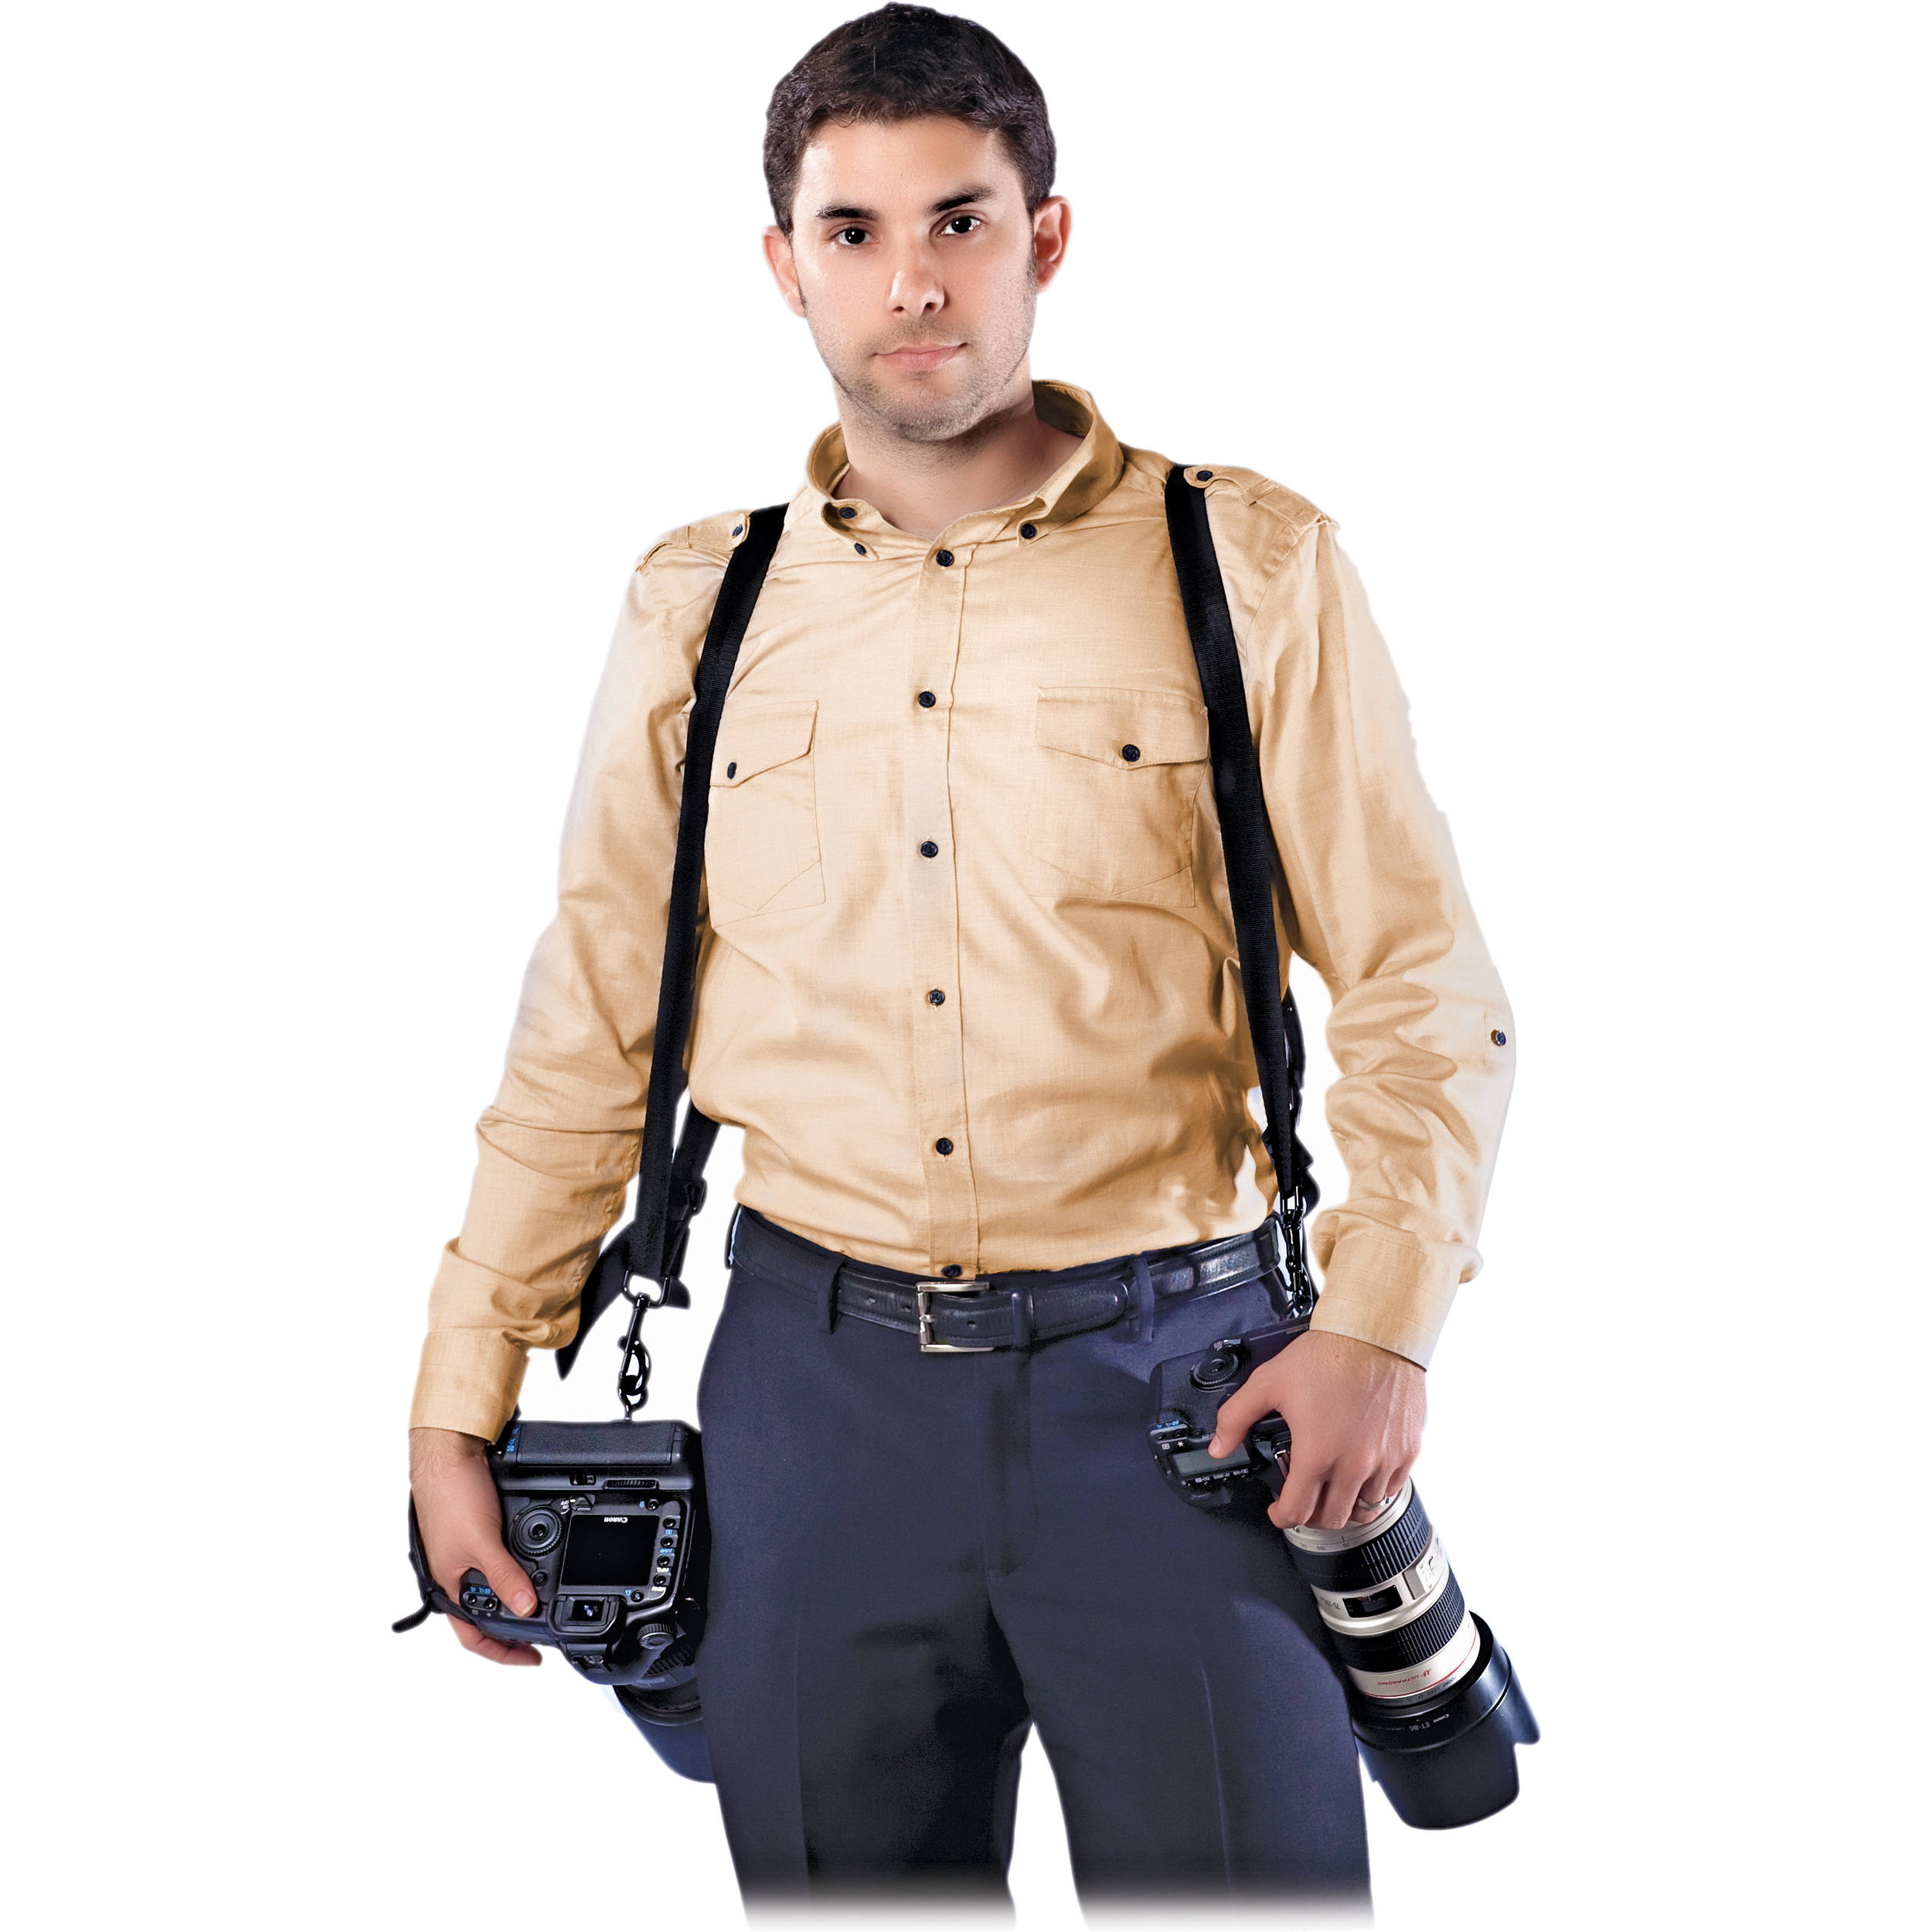 CameraSlingers_CSDS_CSFS_Freedom_Double_Camera_Strap_681761 cameraslingers freedom double camera strap (black) csds csfs b&h dual camera harness at webbmarketing.co